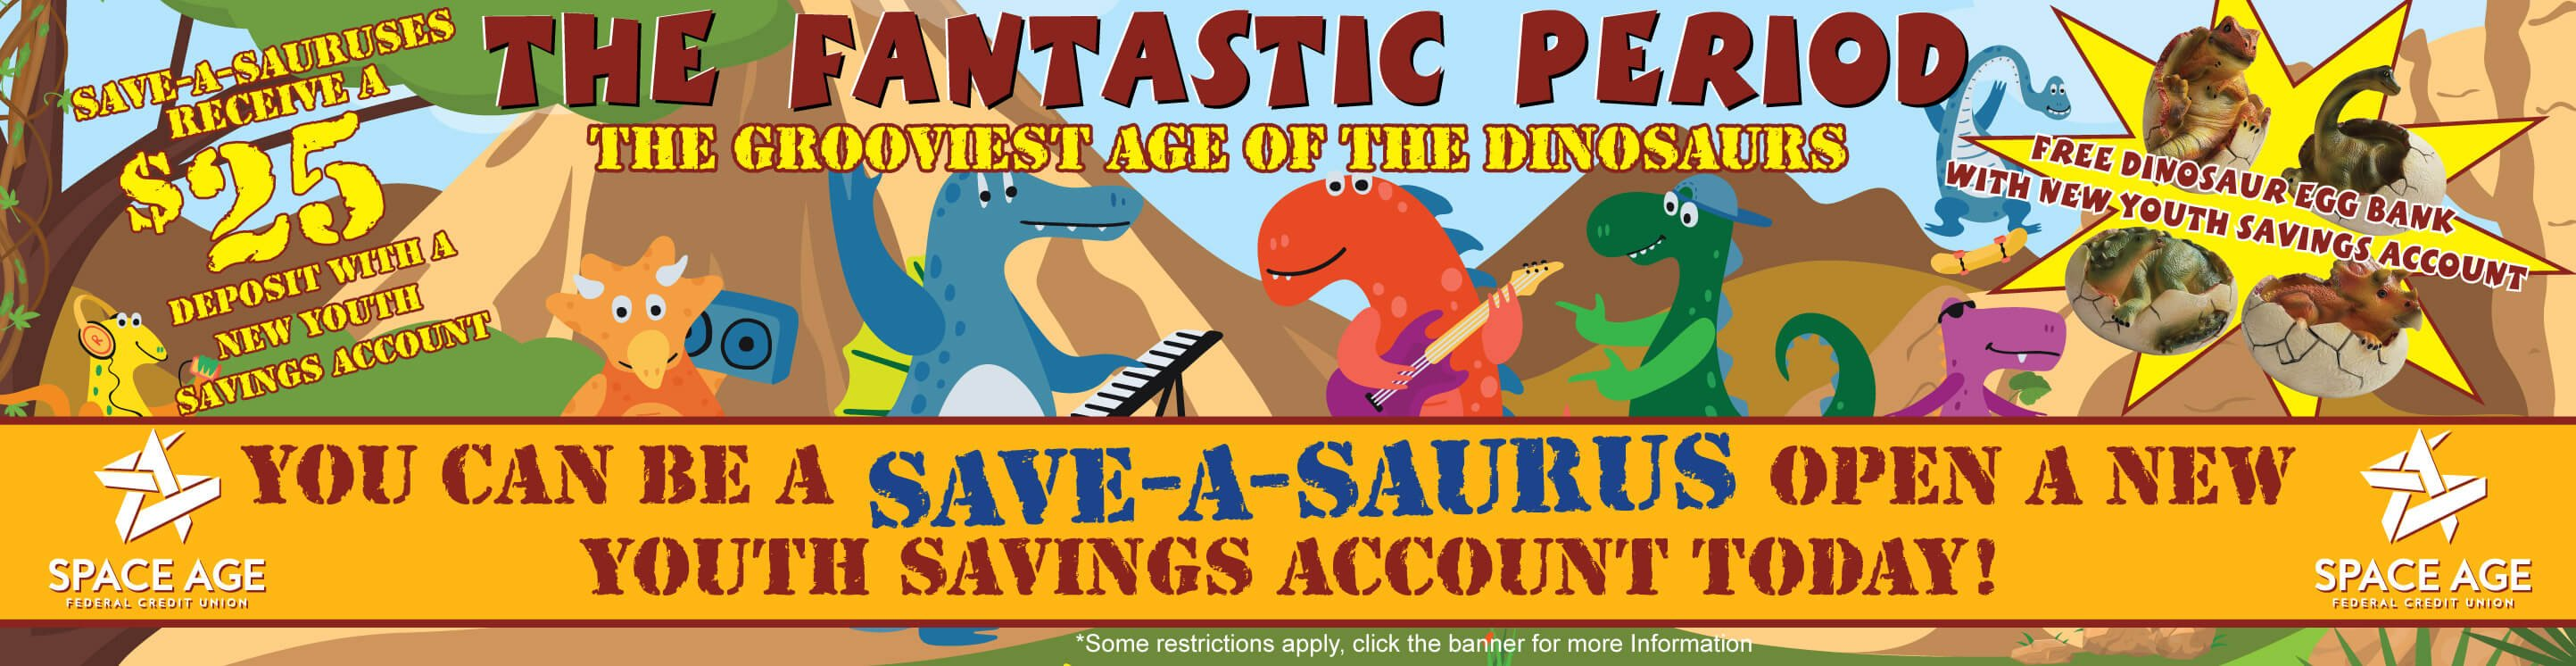 the Banner depicts a cartoon group of dinosaurs, some playing music, others on skateboards. The Words at the top read, The Fantastic Period, The Grooviest Age of the Dinosaurs. Be a Save-a-saurus and open in Youth Savings Account Today.